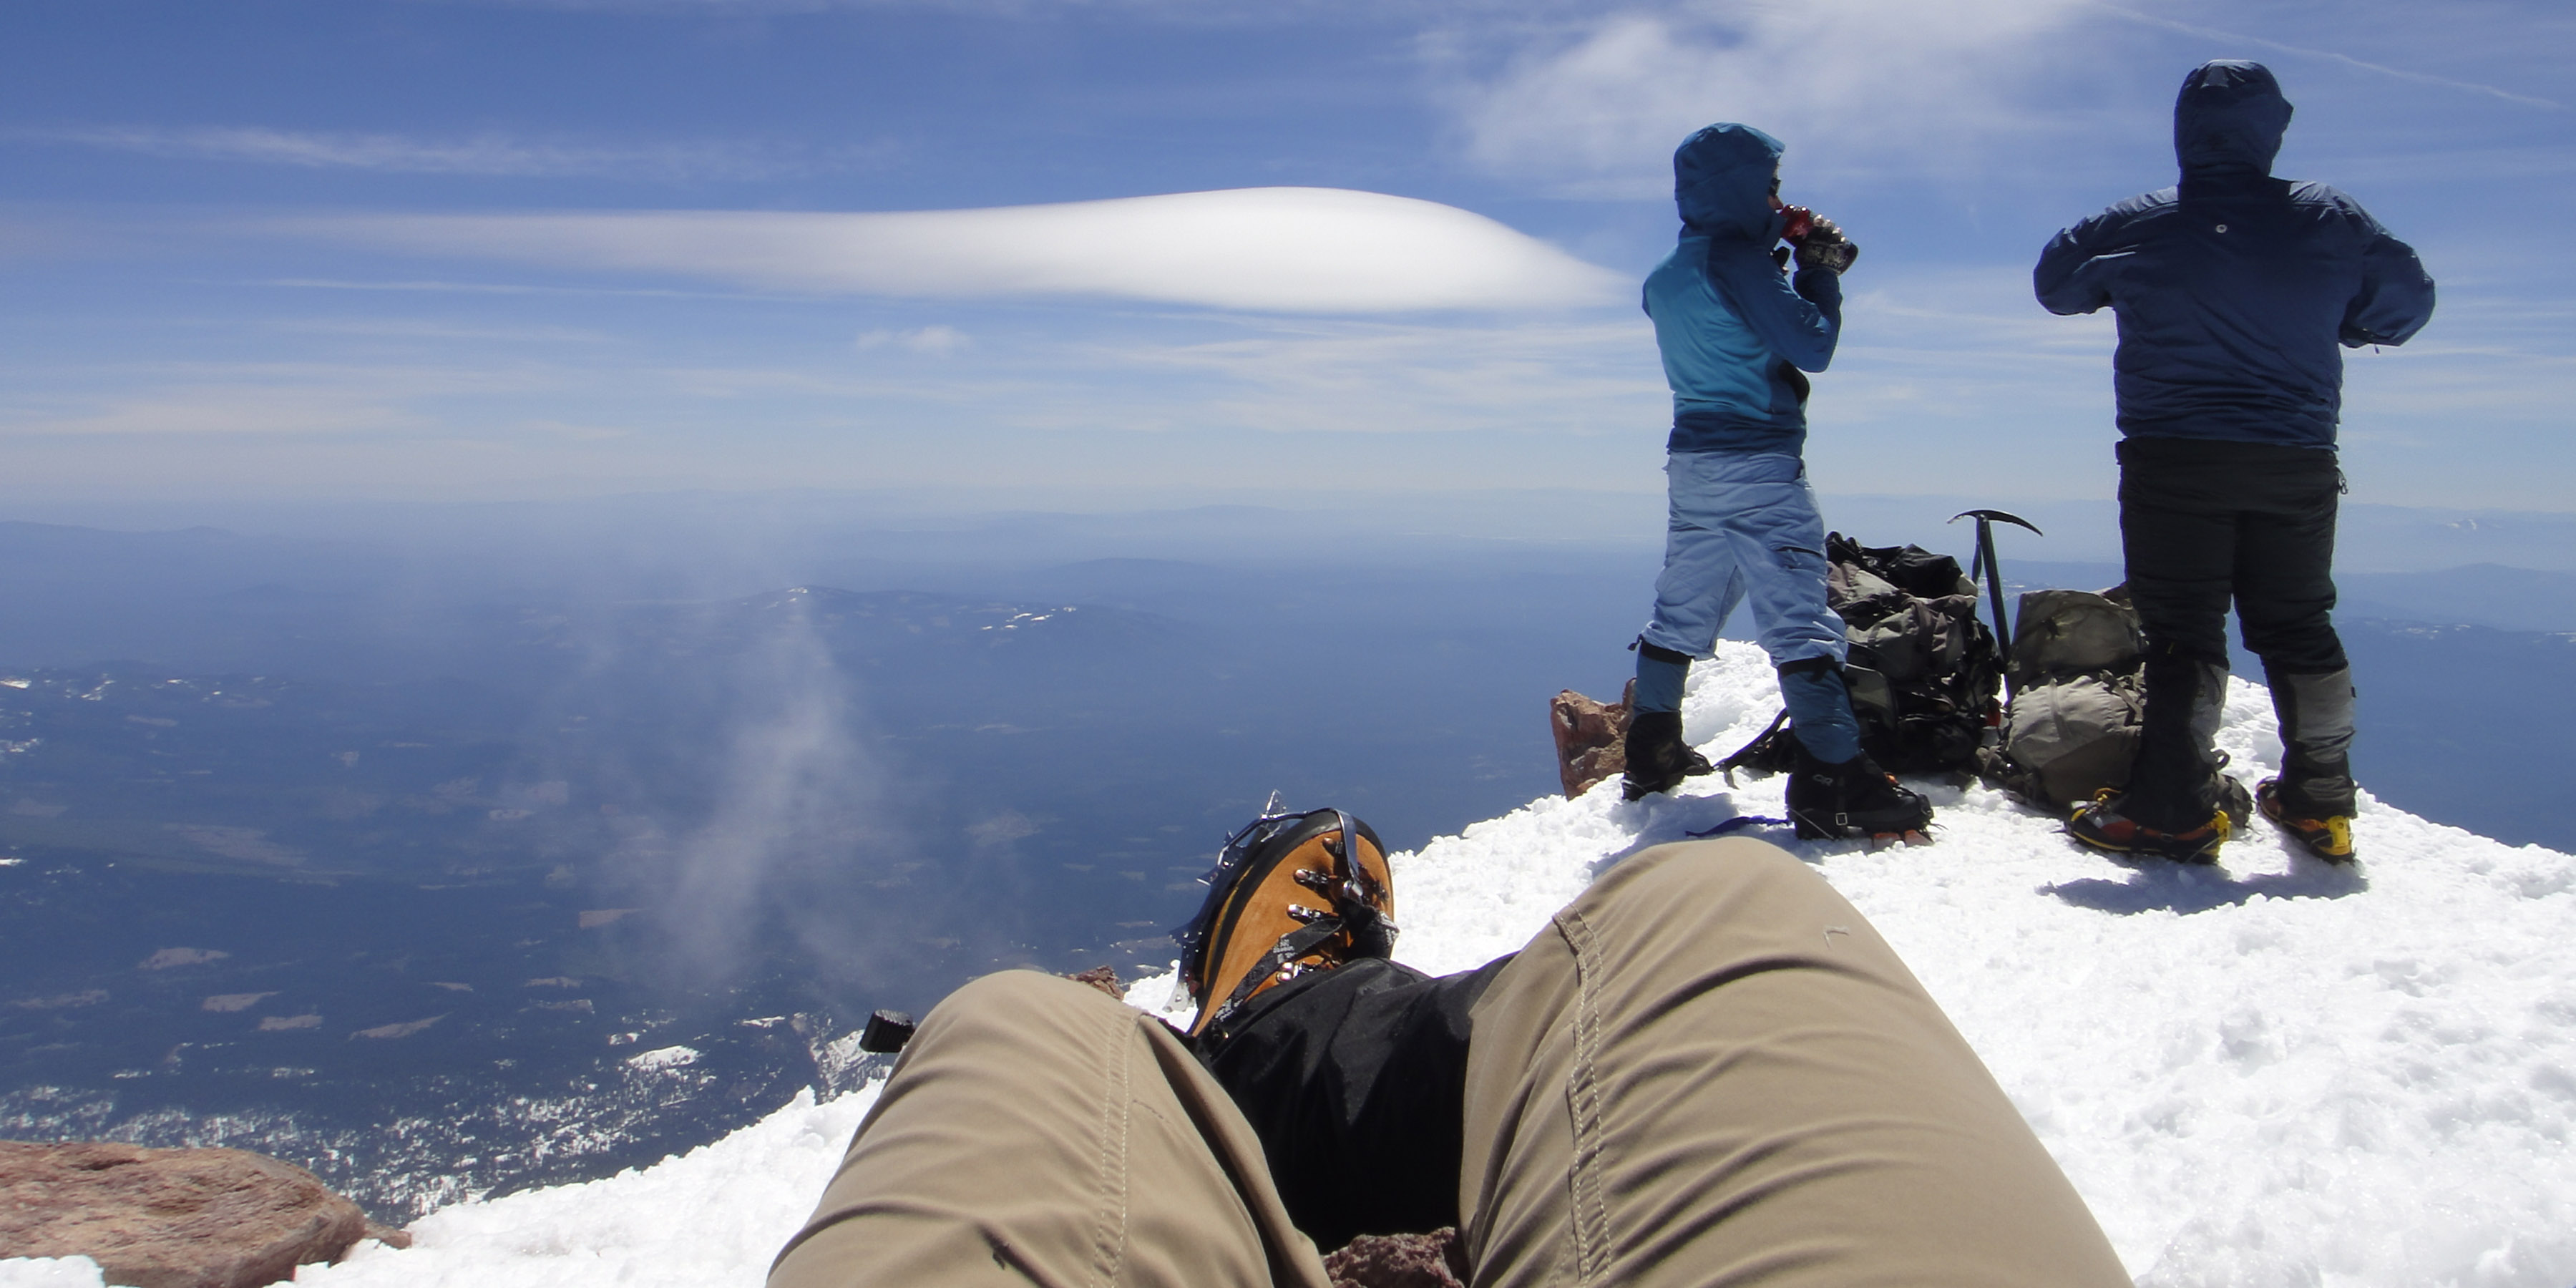 mt shasta climbing weather